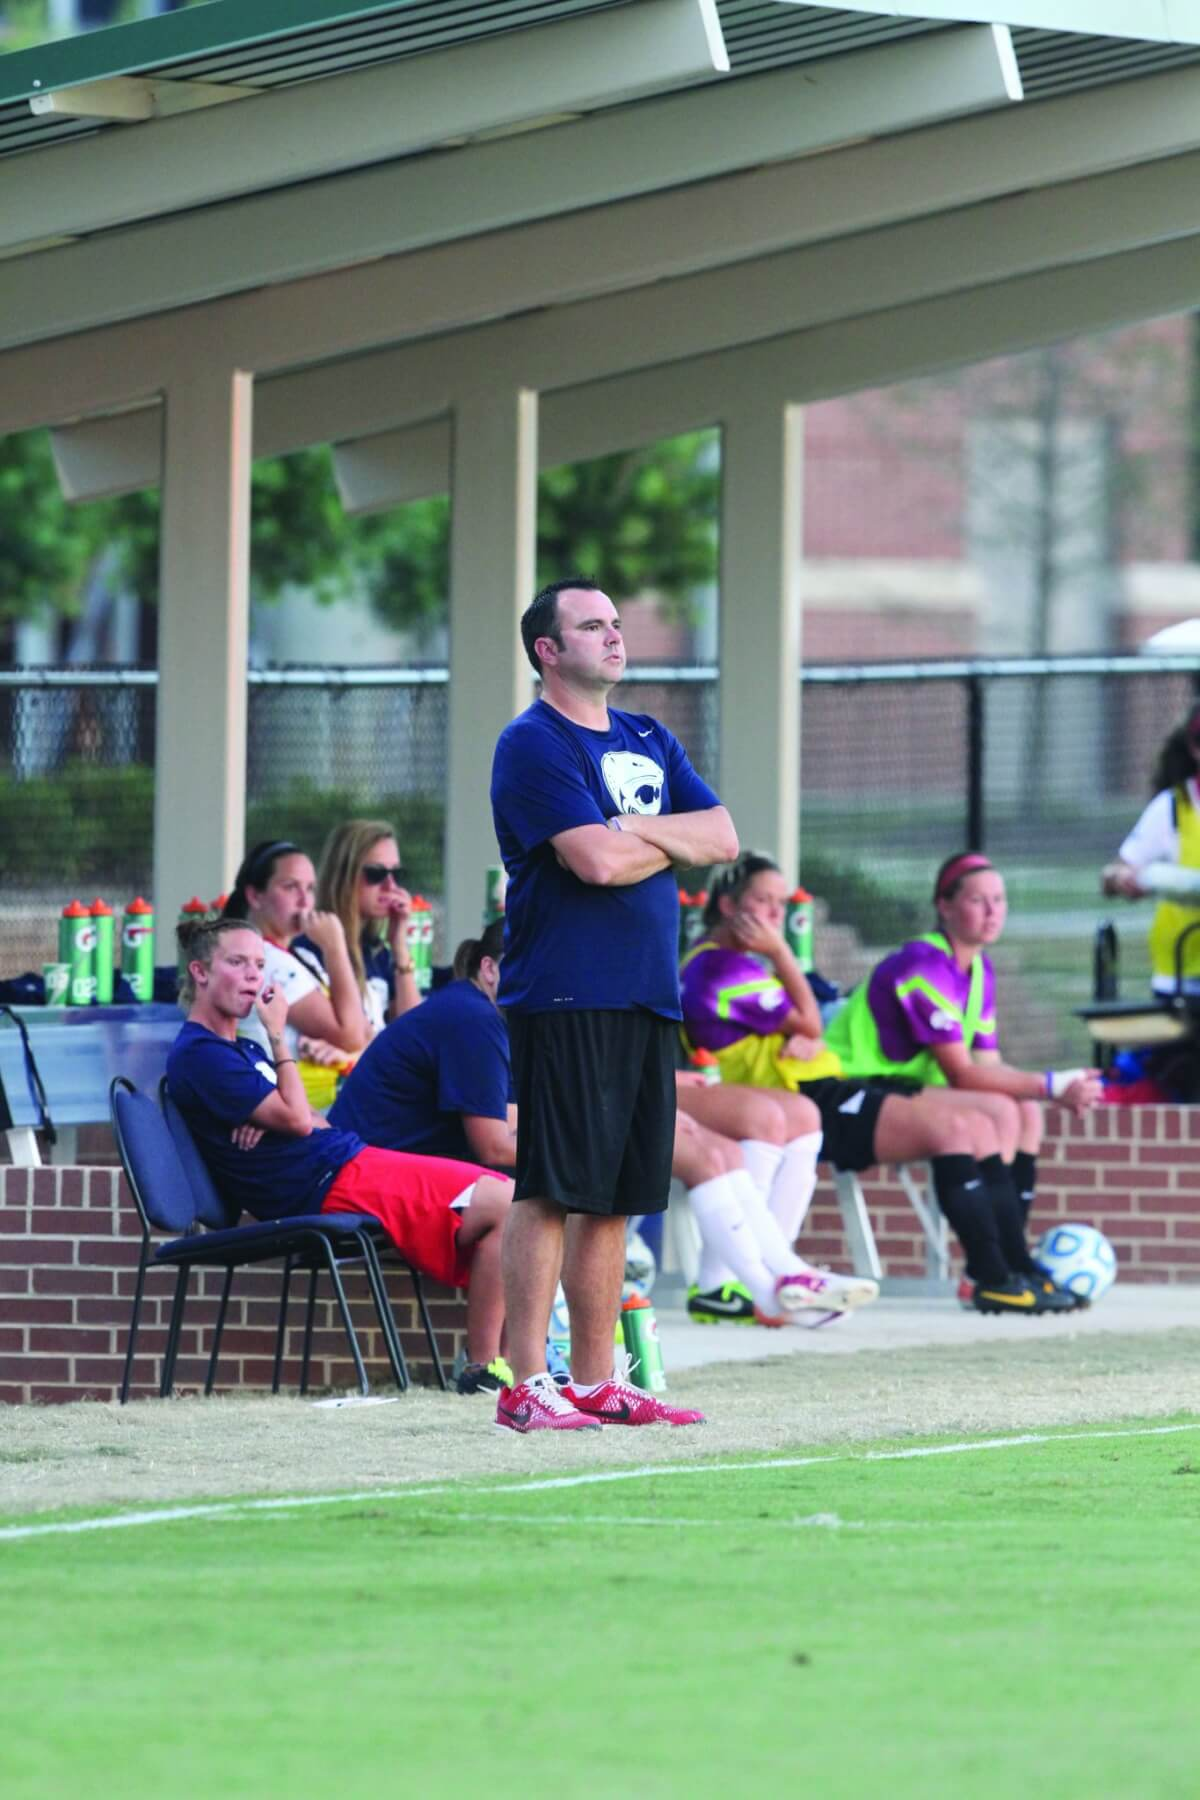 Local soccer squads take aim at postseason after championships